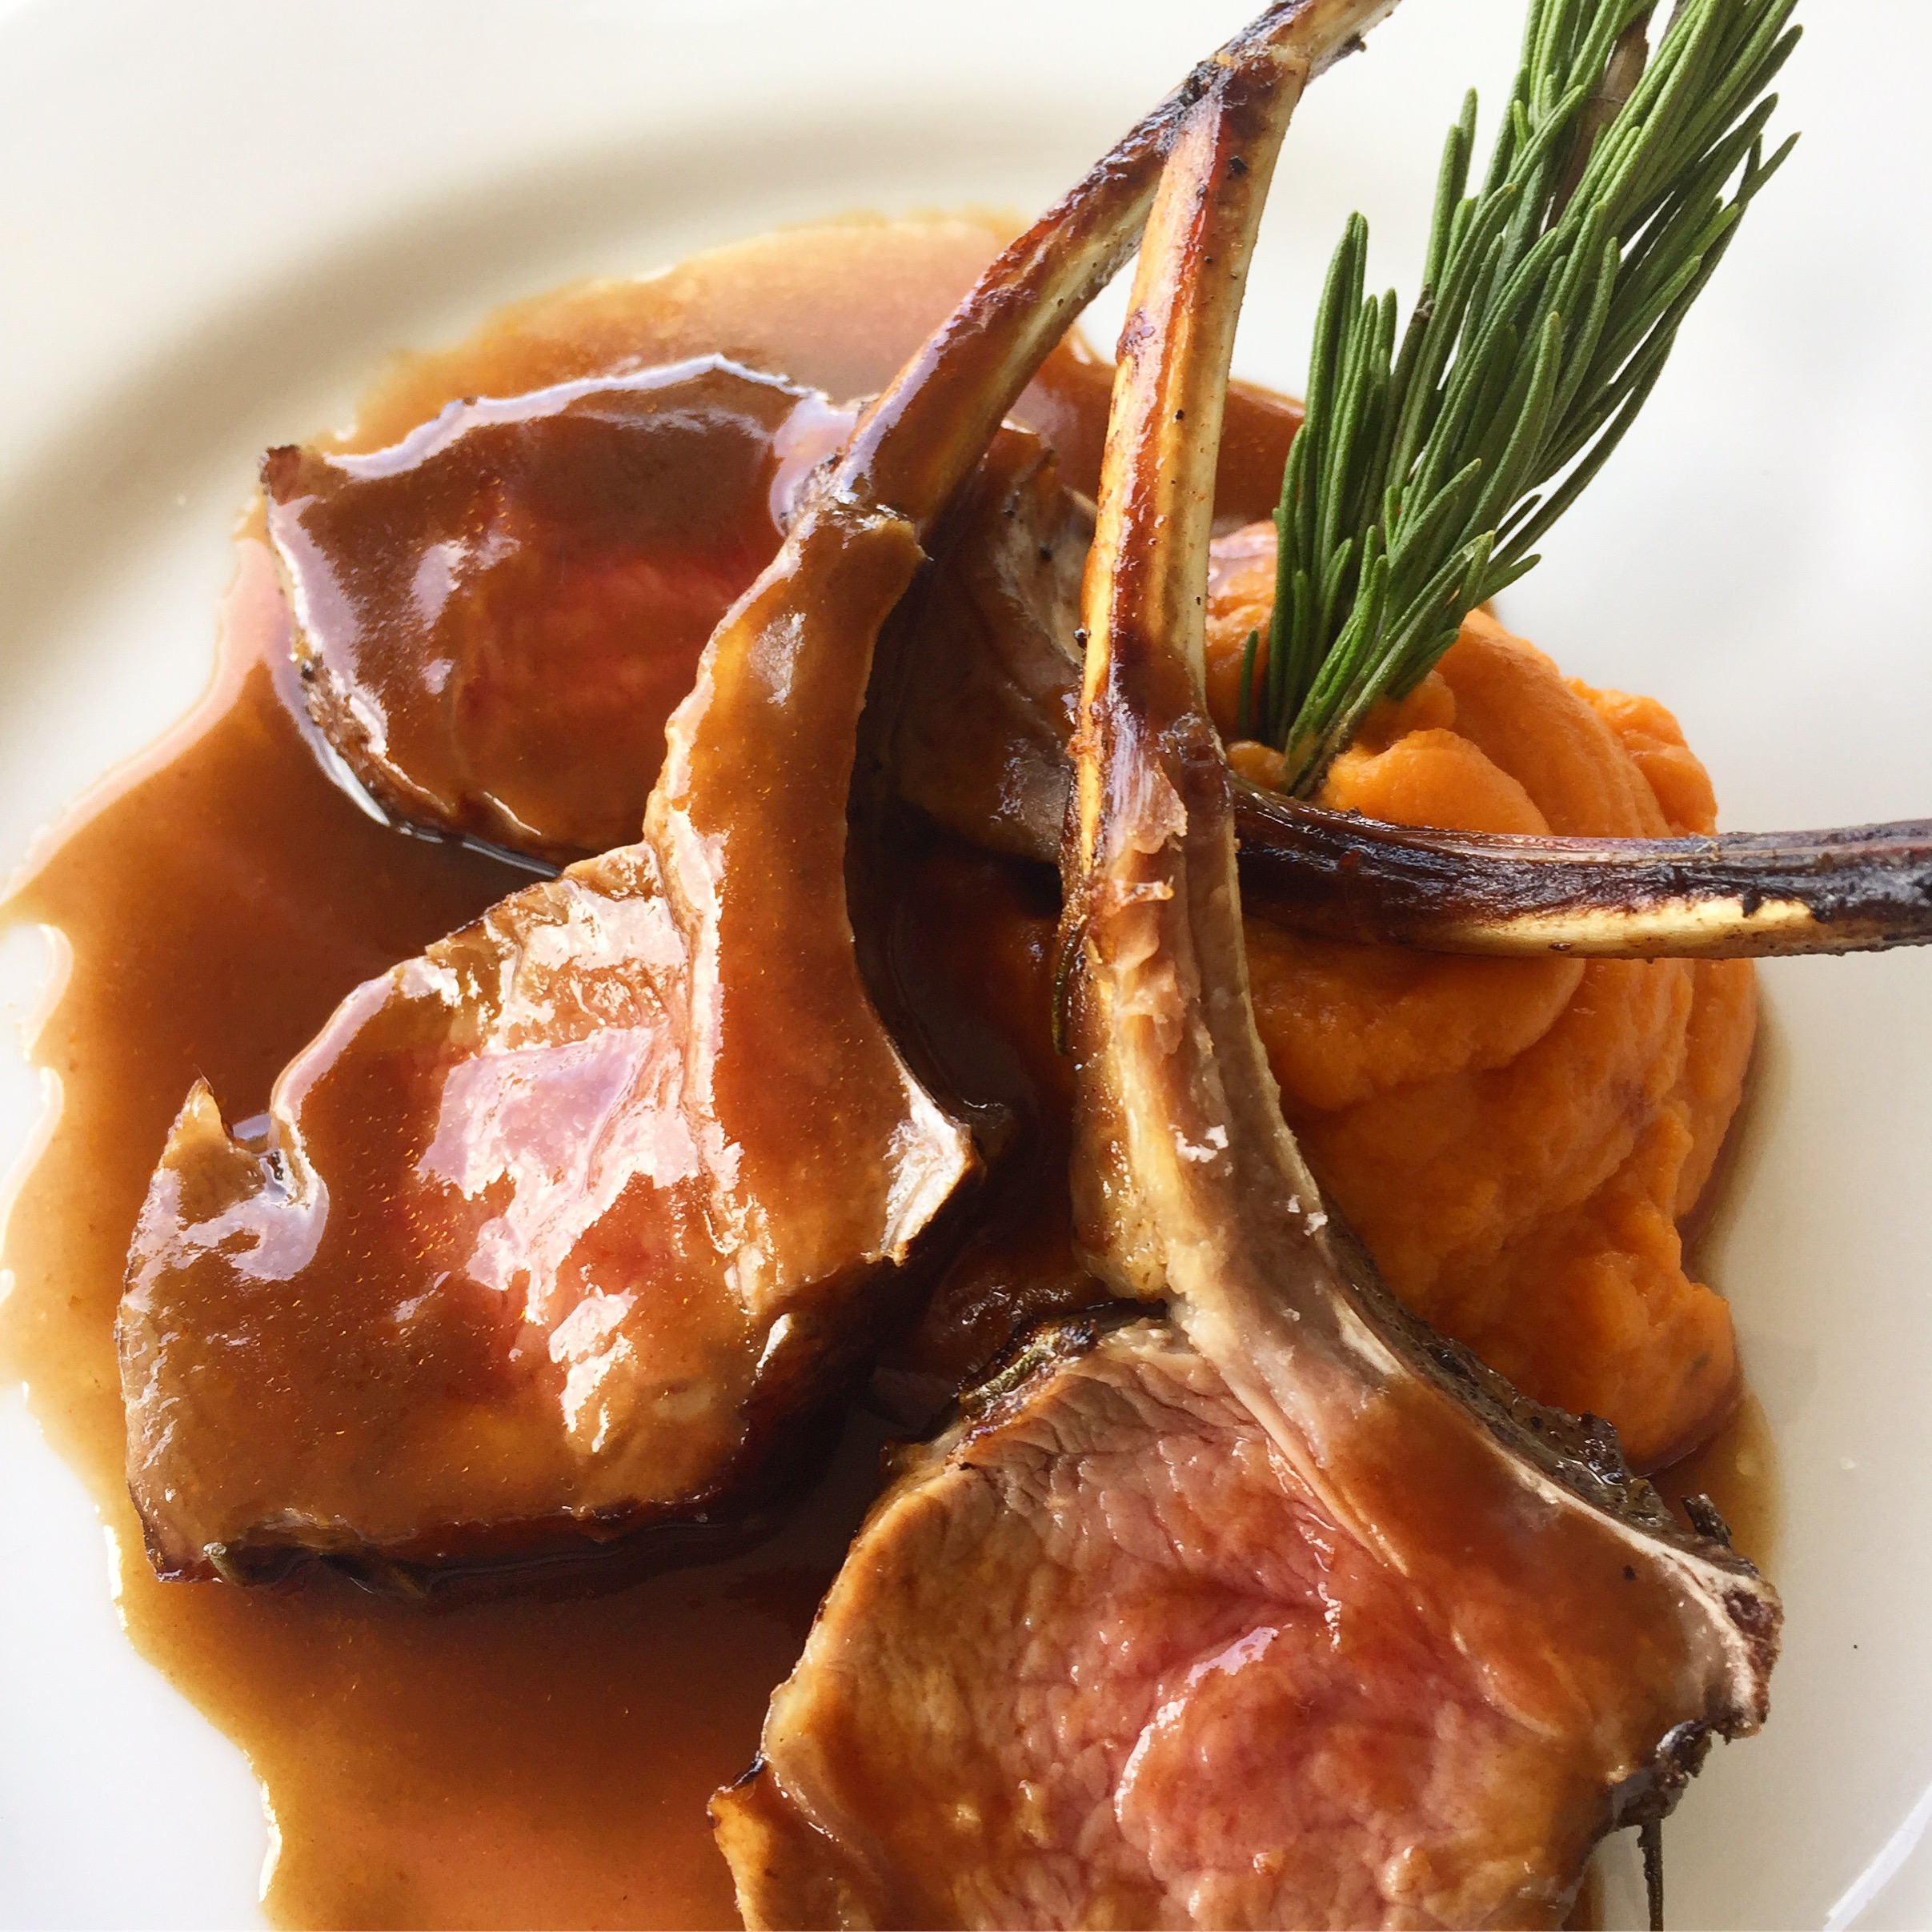 Succulent Rosemary Lamb Chops served with a creamy sweet potato mash and mint demi glacé